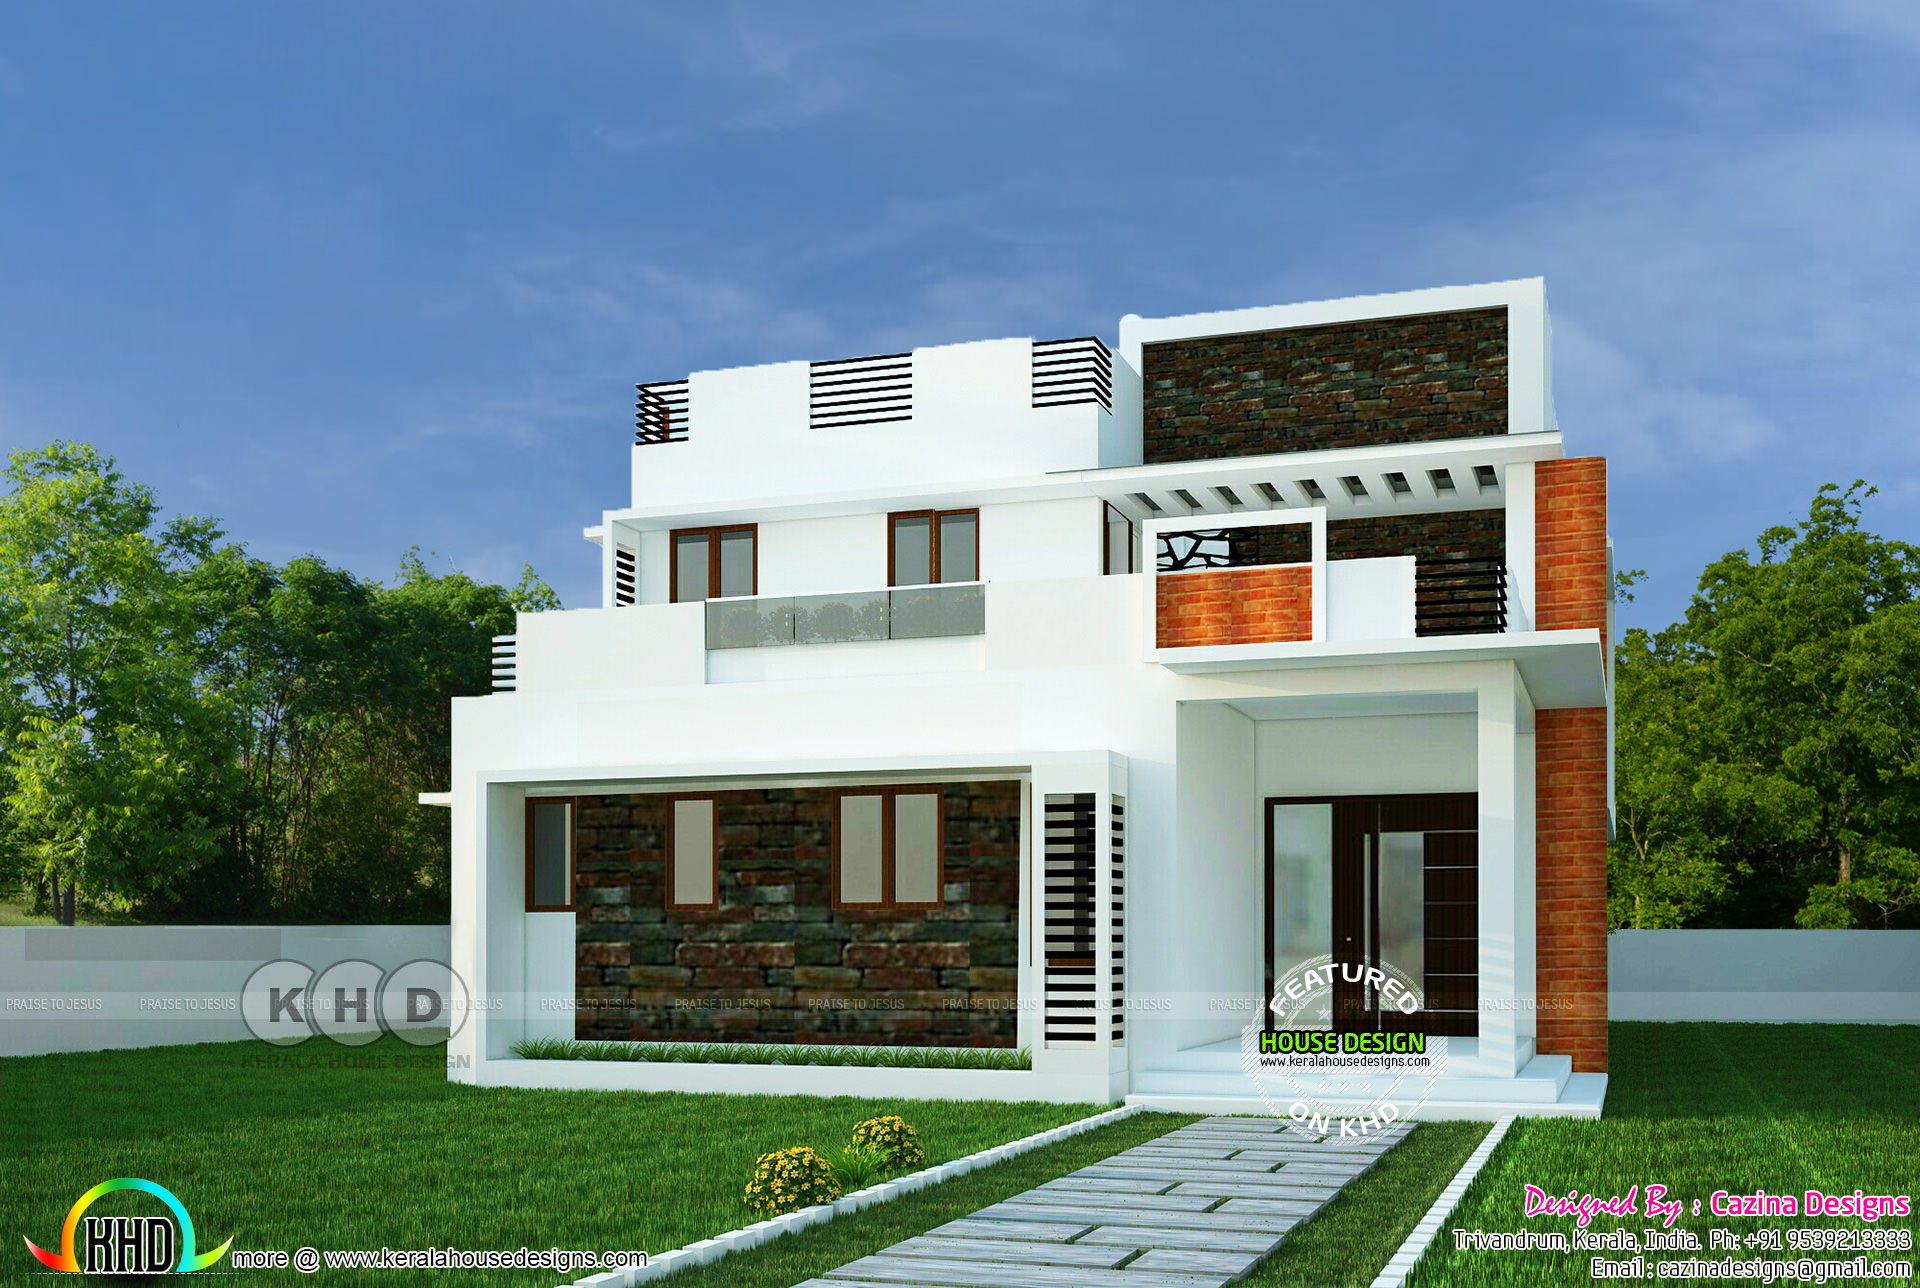 4 bhk contemporary style home 195 square meter kerala for 70 square meter modern house design